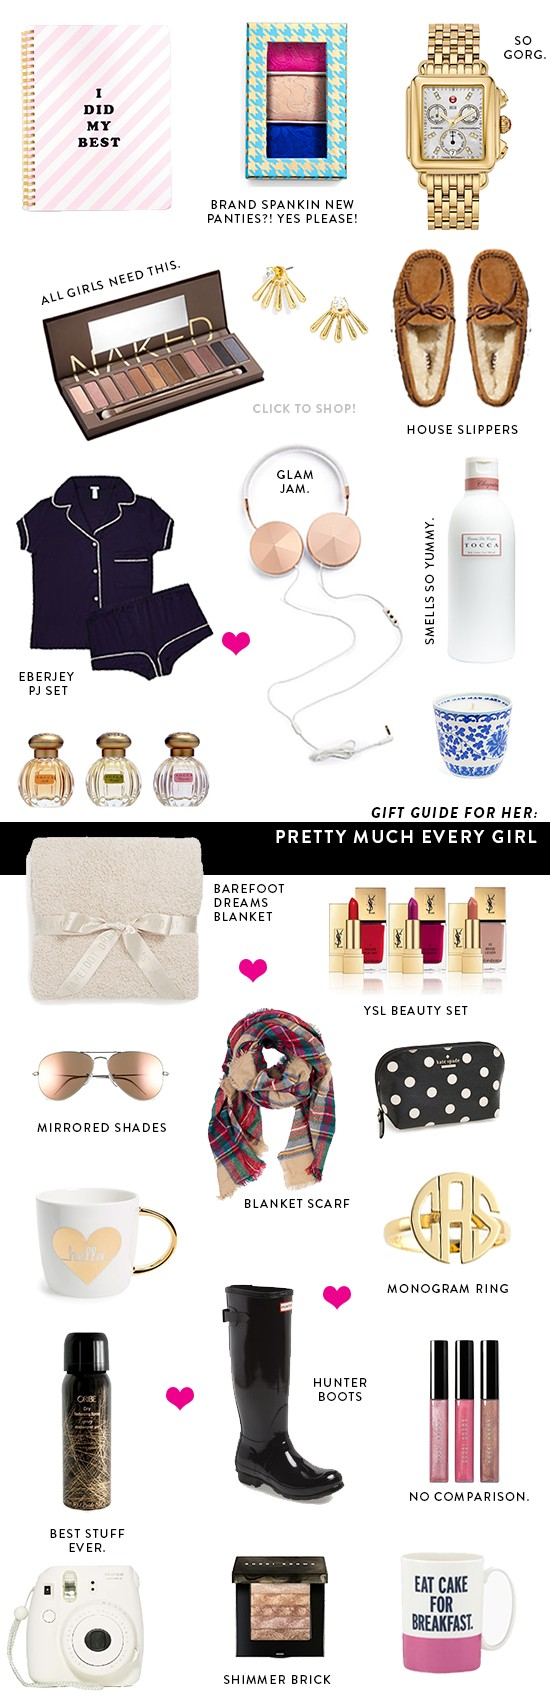 Gift guide for her pretty much every girl for List of gifts for her